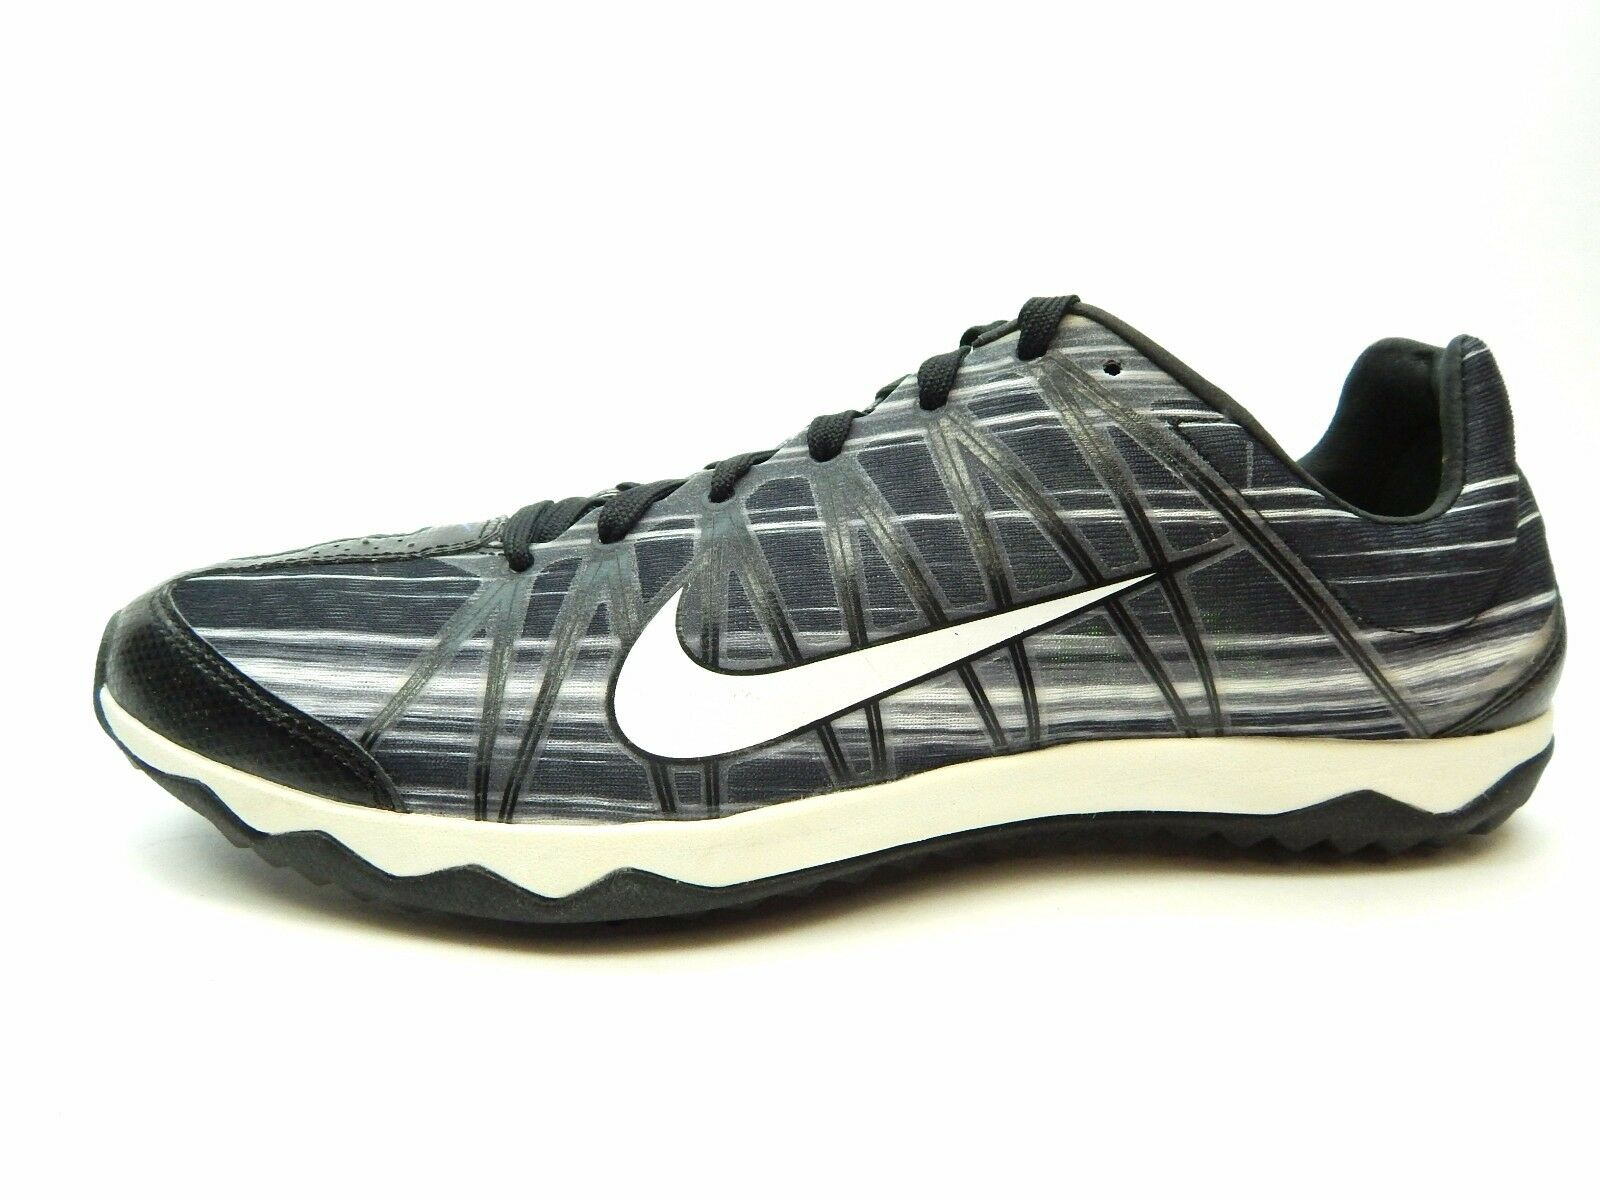 NIKE ZOOM RIVAL XC 605506 014 BLACK SUMMIT WHITE MEN SHOES SIZE 11 & 12.5 Comfortable and good-looking